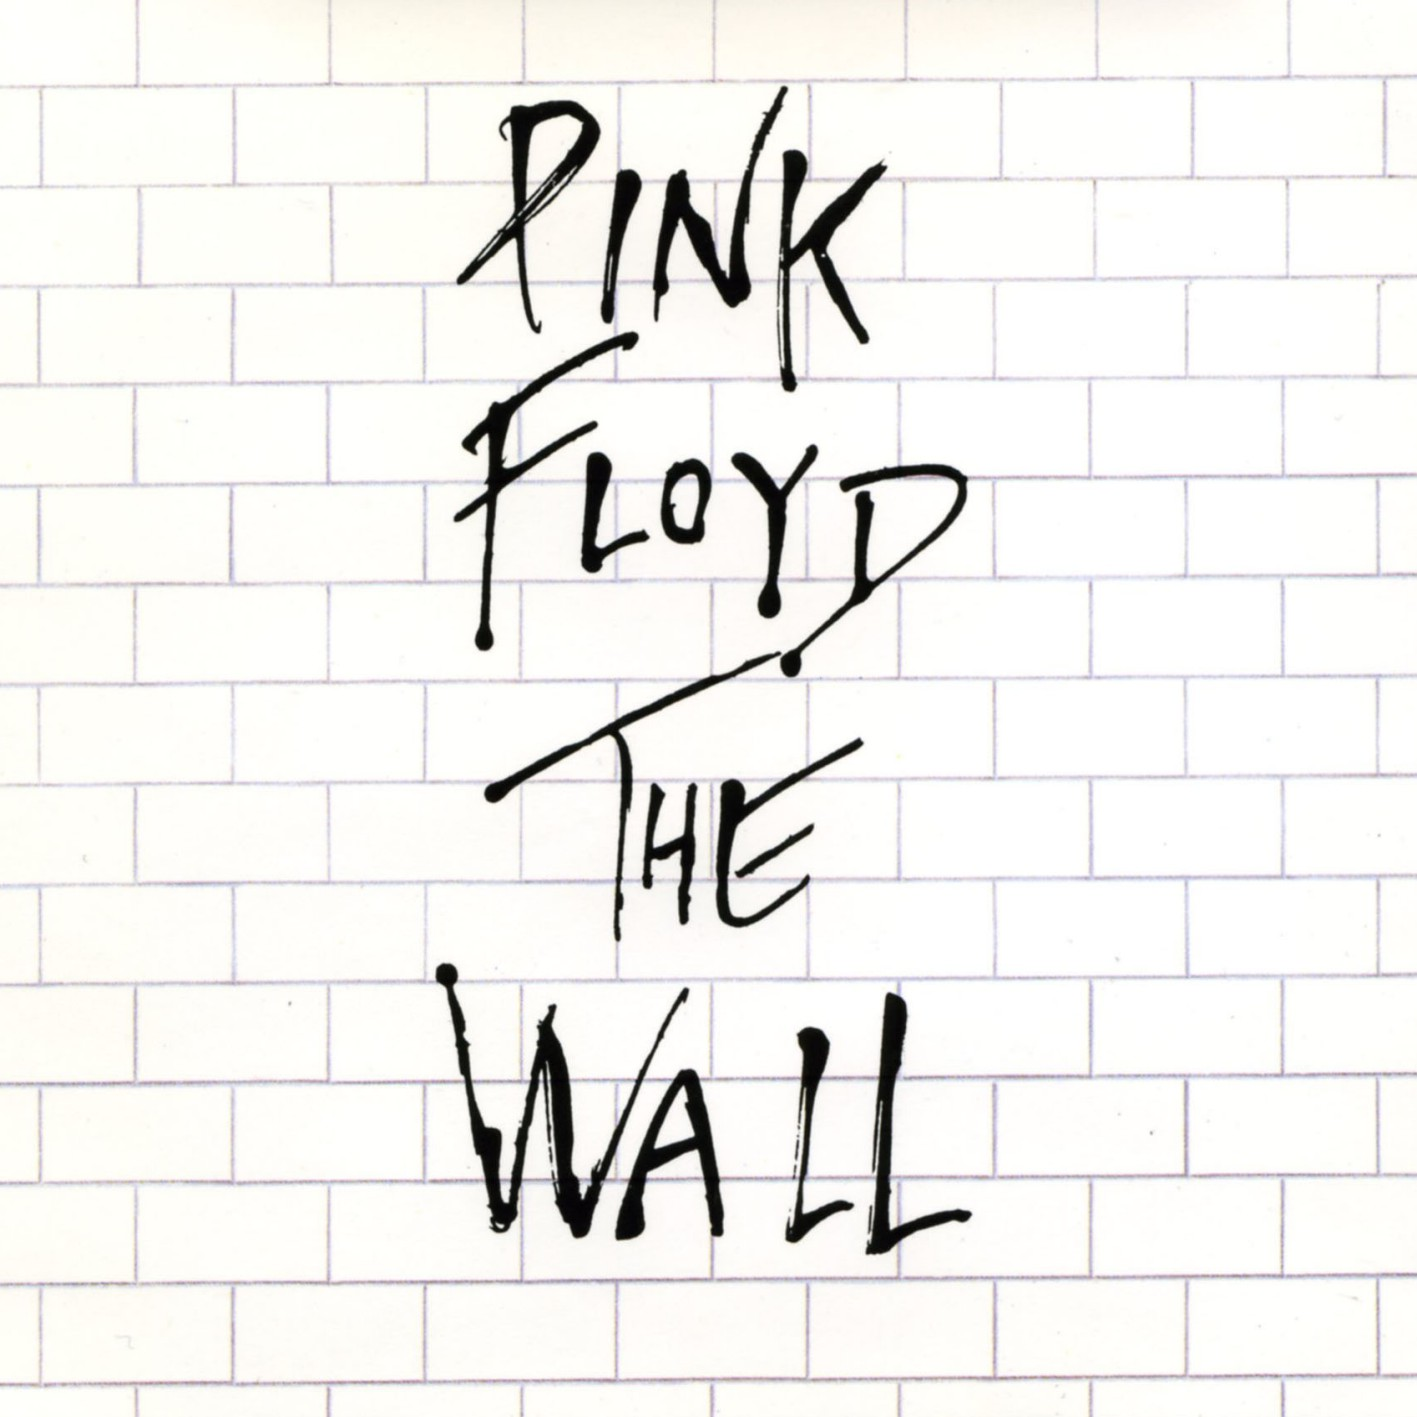 The Wall Pink Floyd: Classic Rock Covers: The Wall